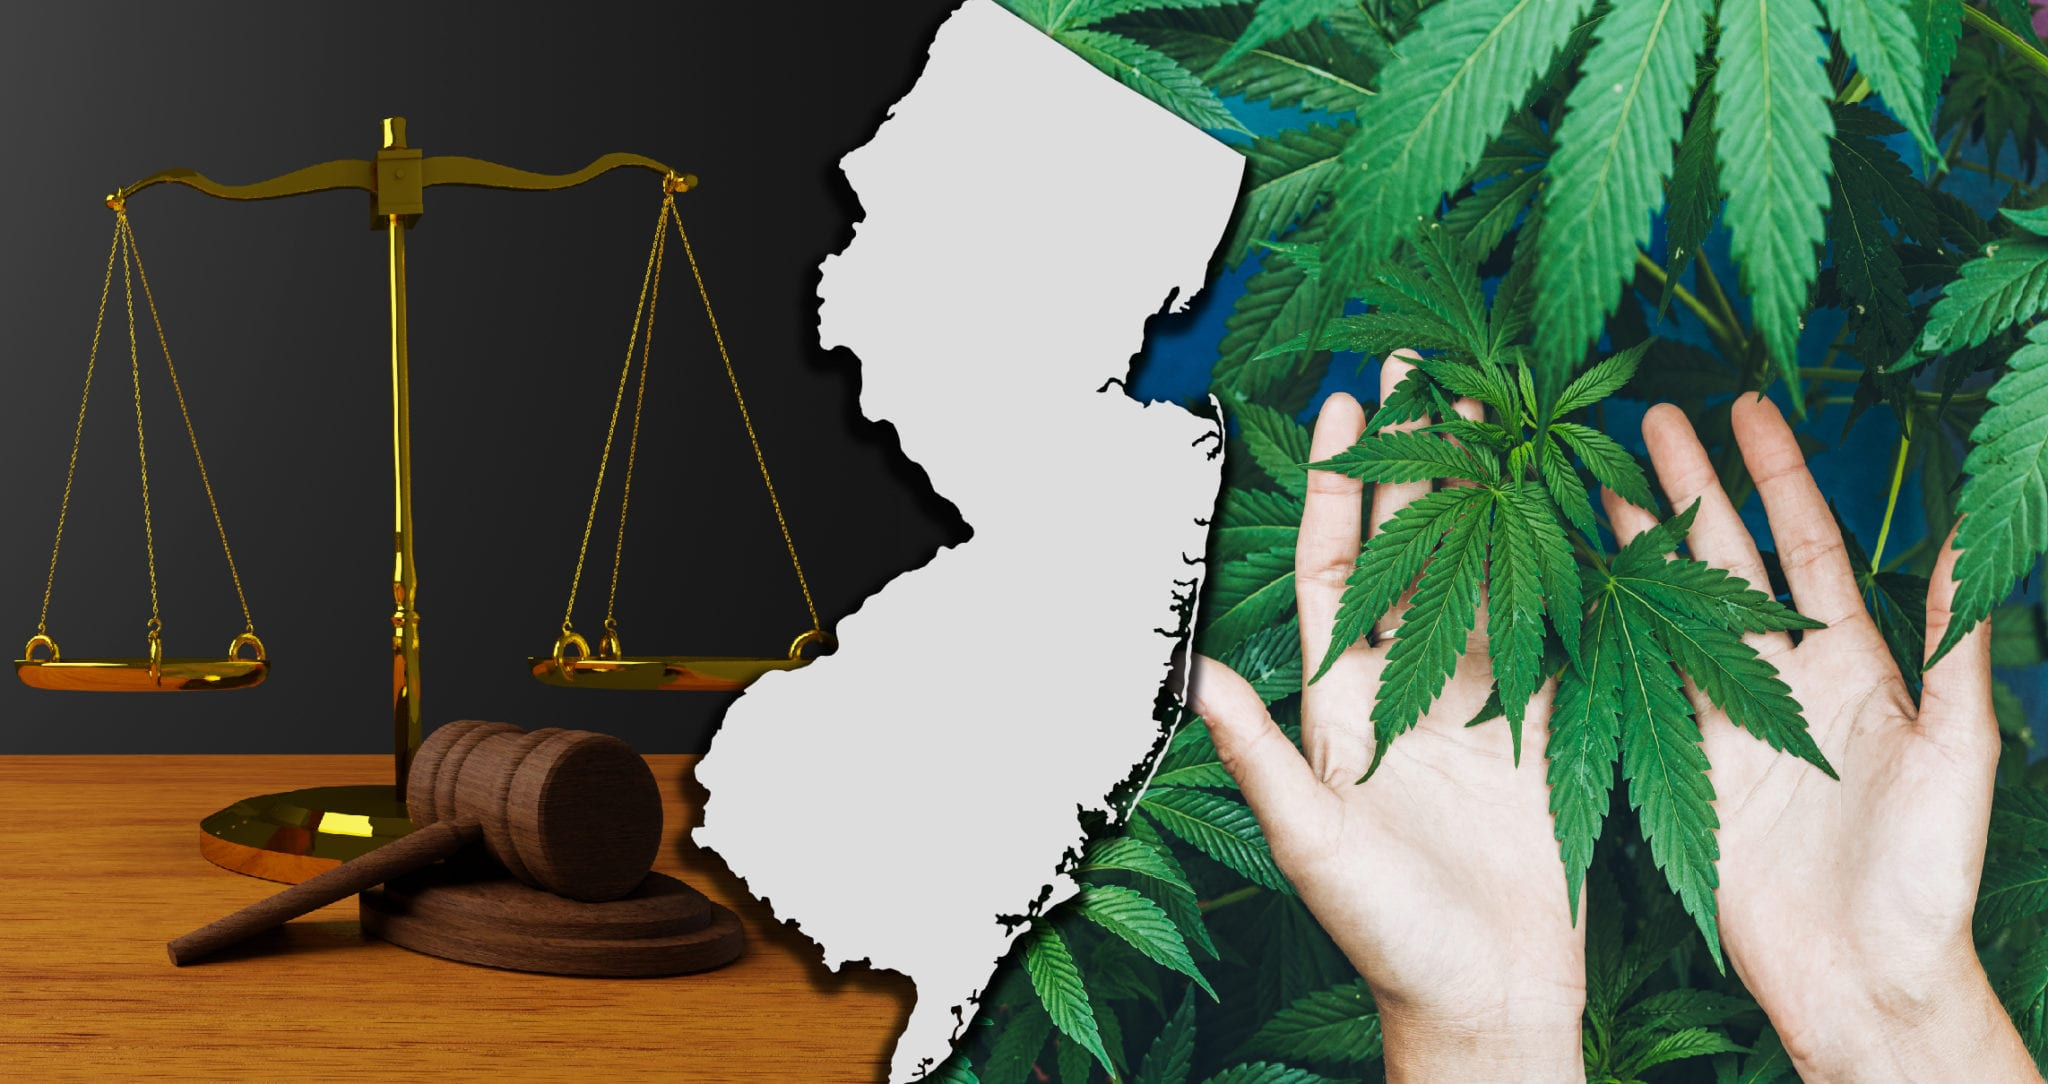 New Jersey: The East Coast cannabis tipping point